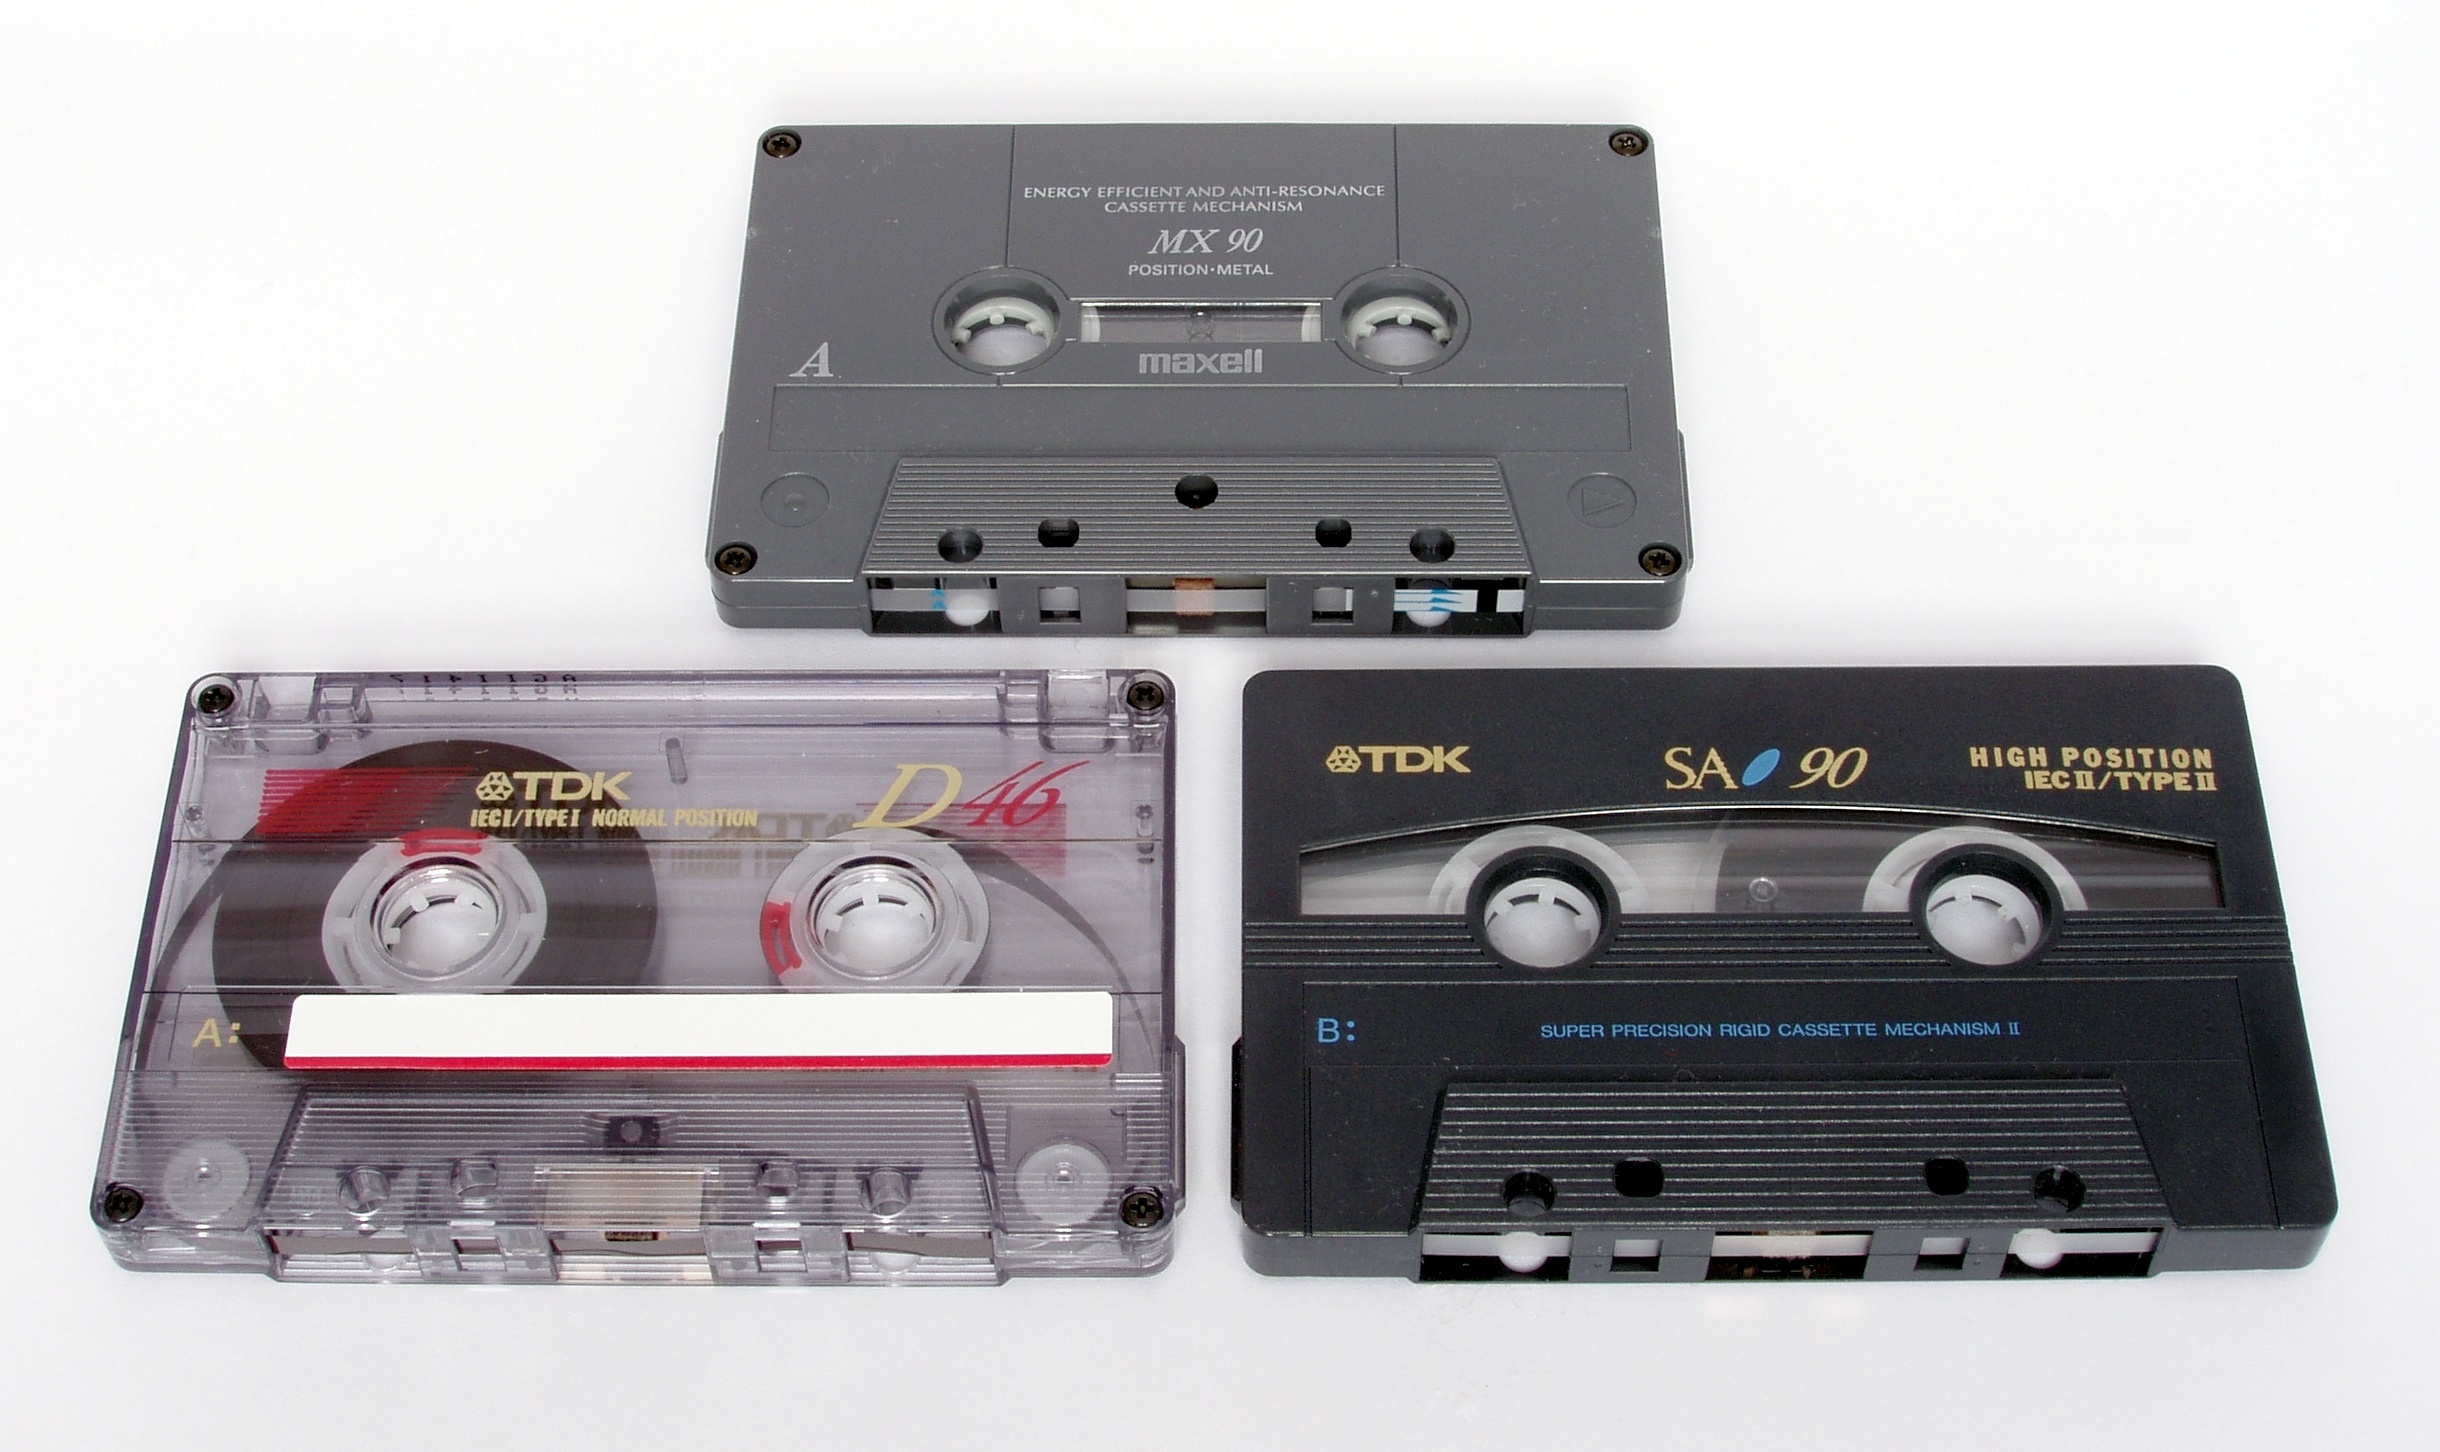 CassetteTypes1.jpg  From the Phonograph to Spotify: The History of Streaming Music CassetteTypes1